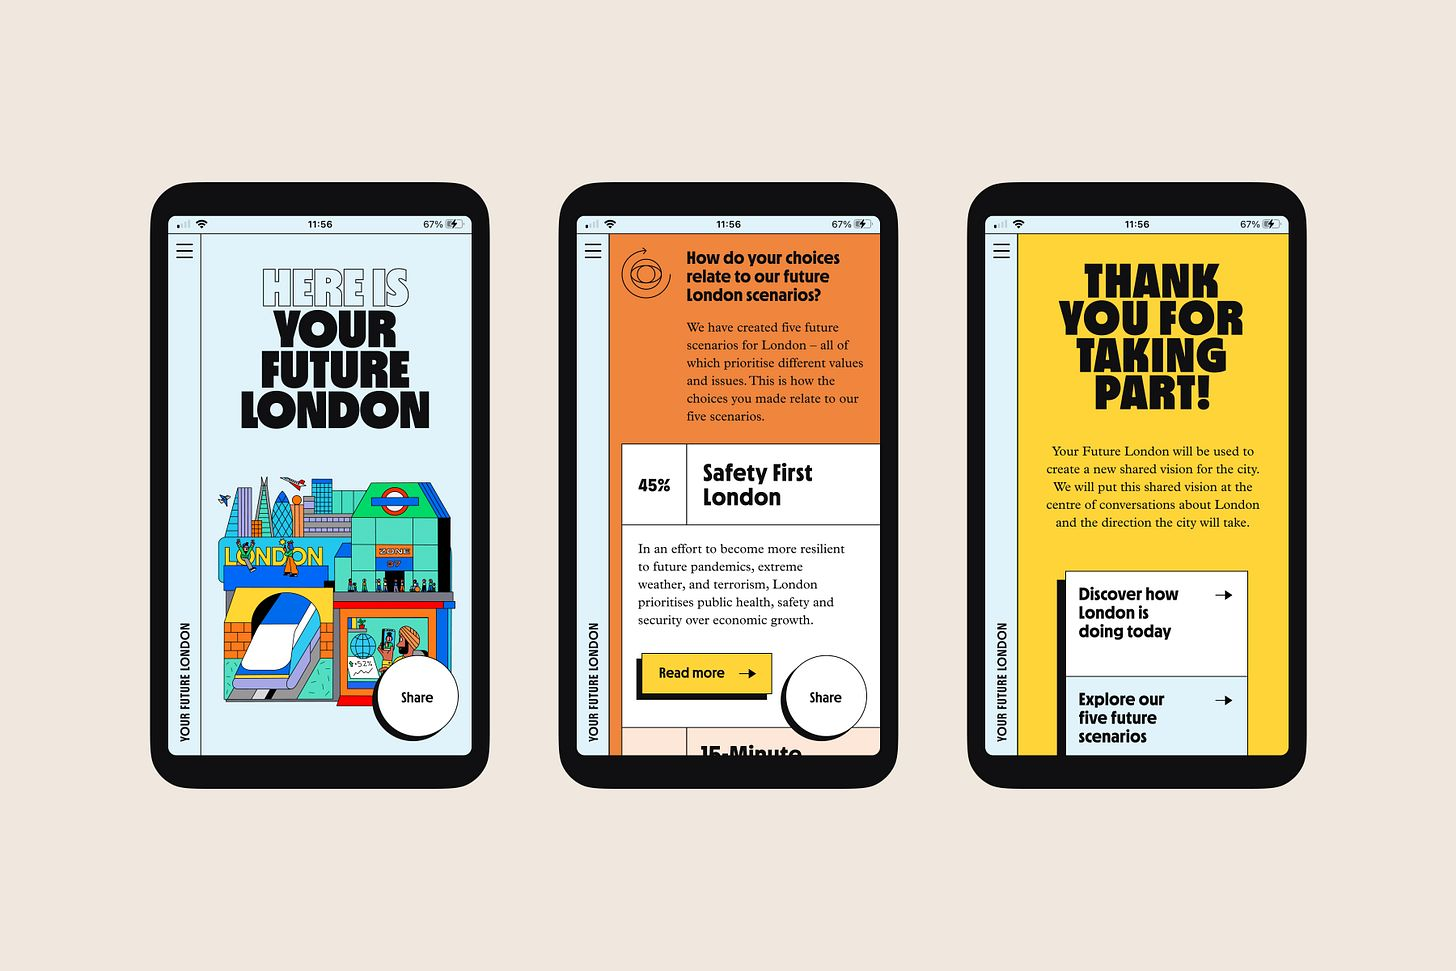 Your Future London website - Fonts In Use